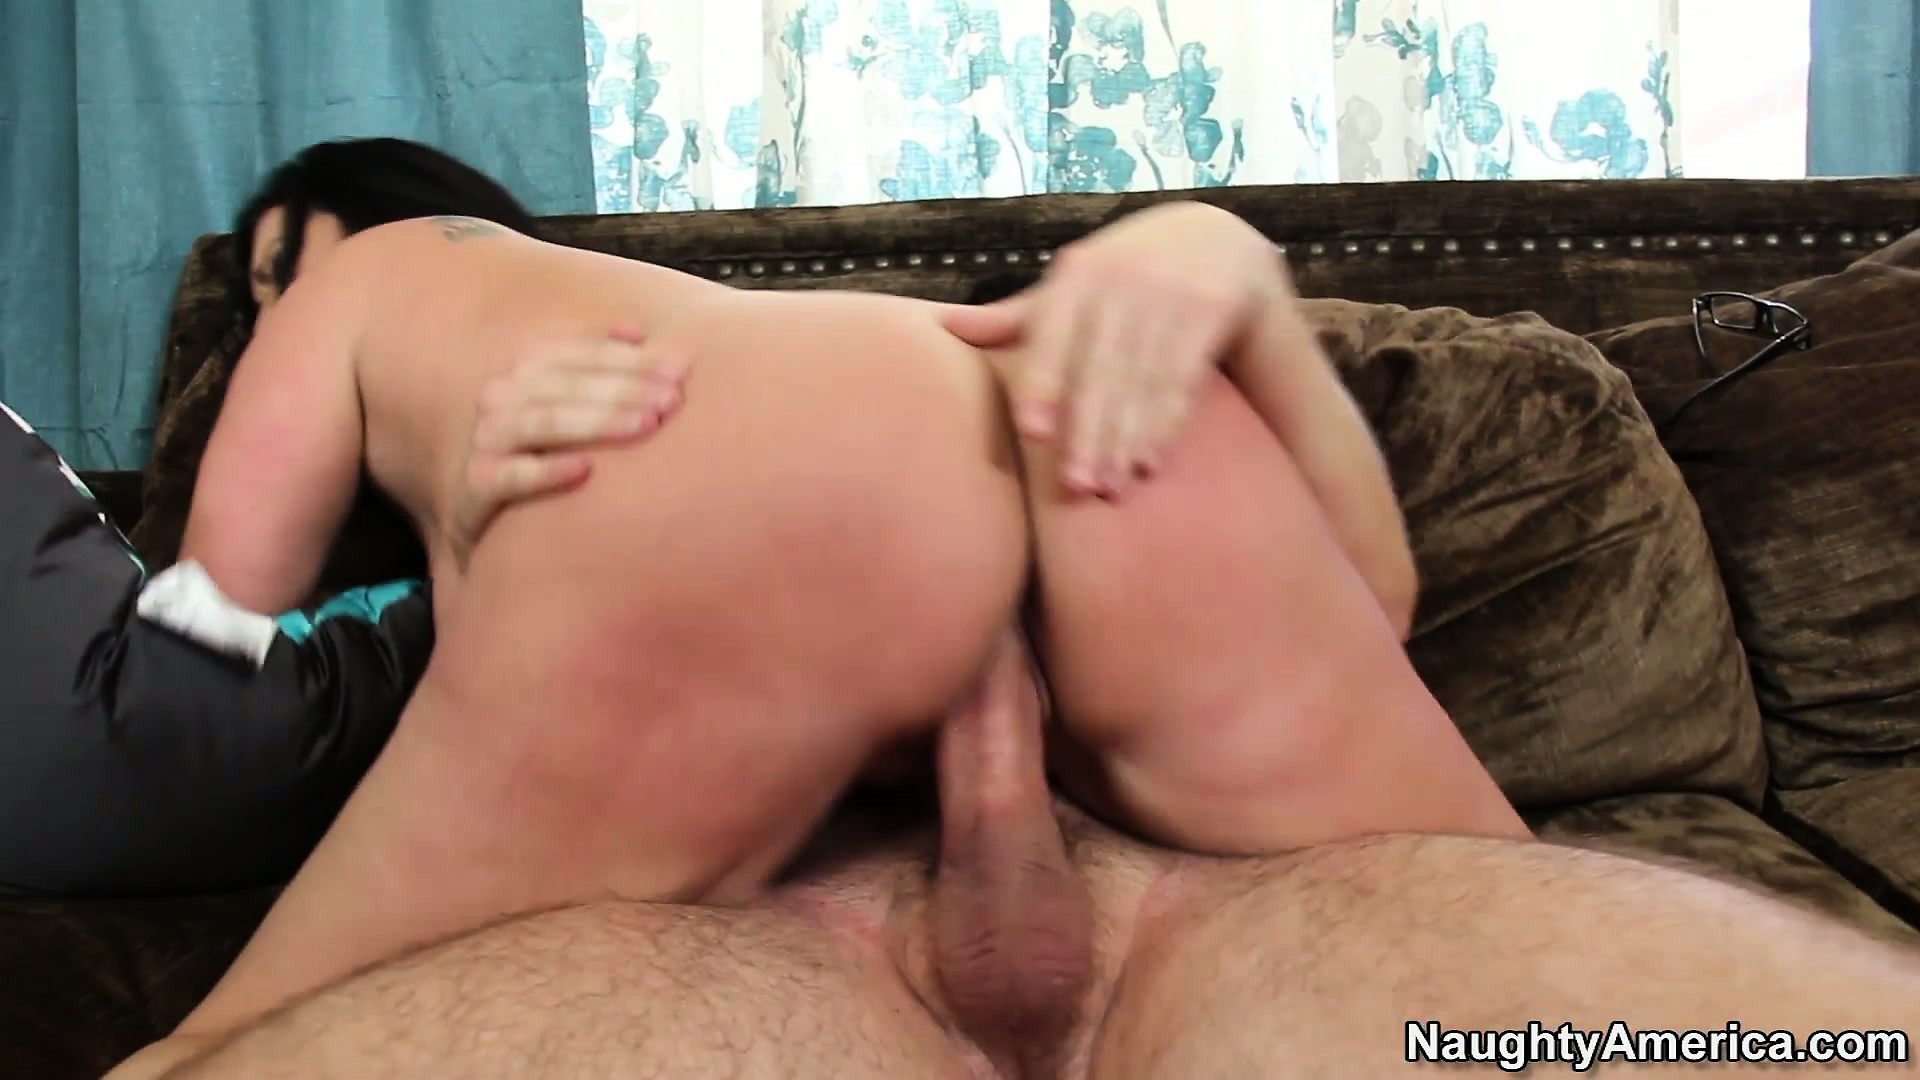 Porn Tube of Sammy Brooks Gets Her Juicy Ass Spanked While Riding On A Dick